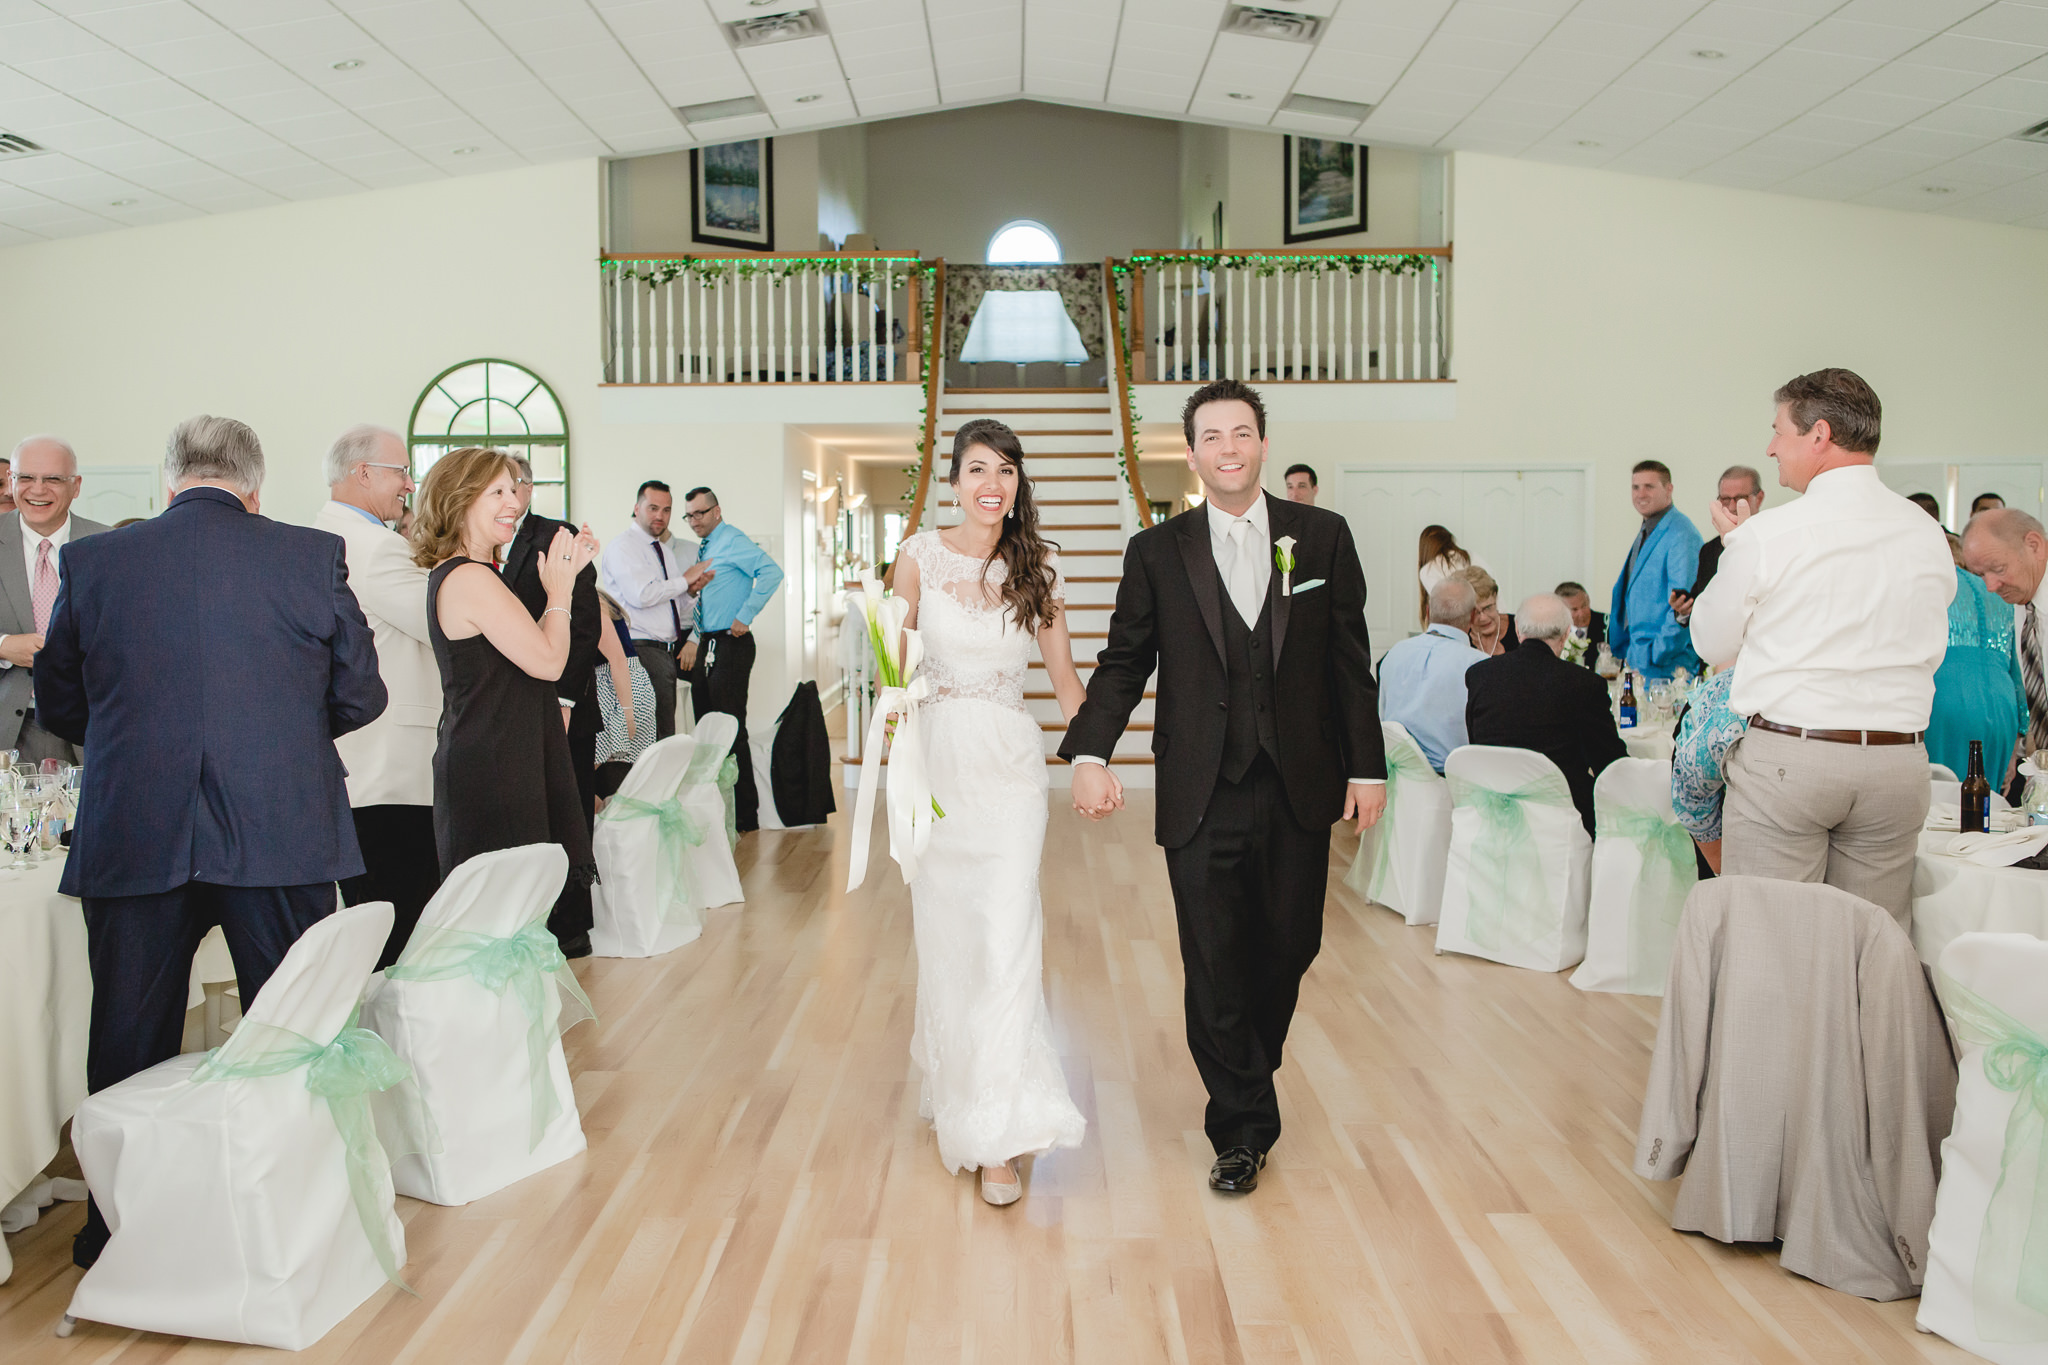 Newlyweds enter their wedding reception at Greystone Fields